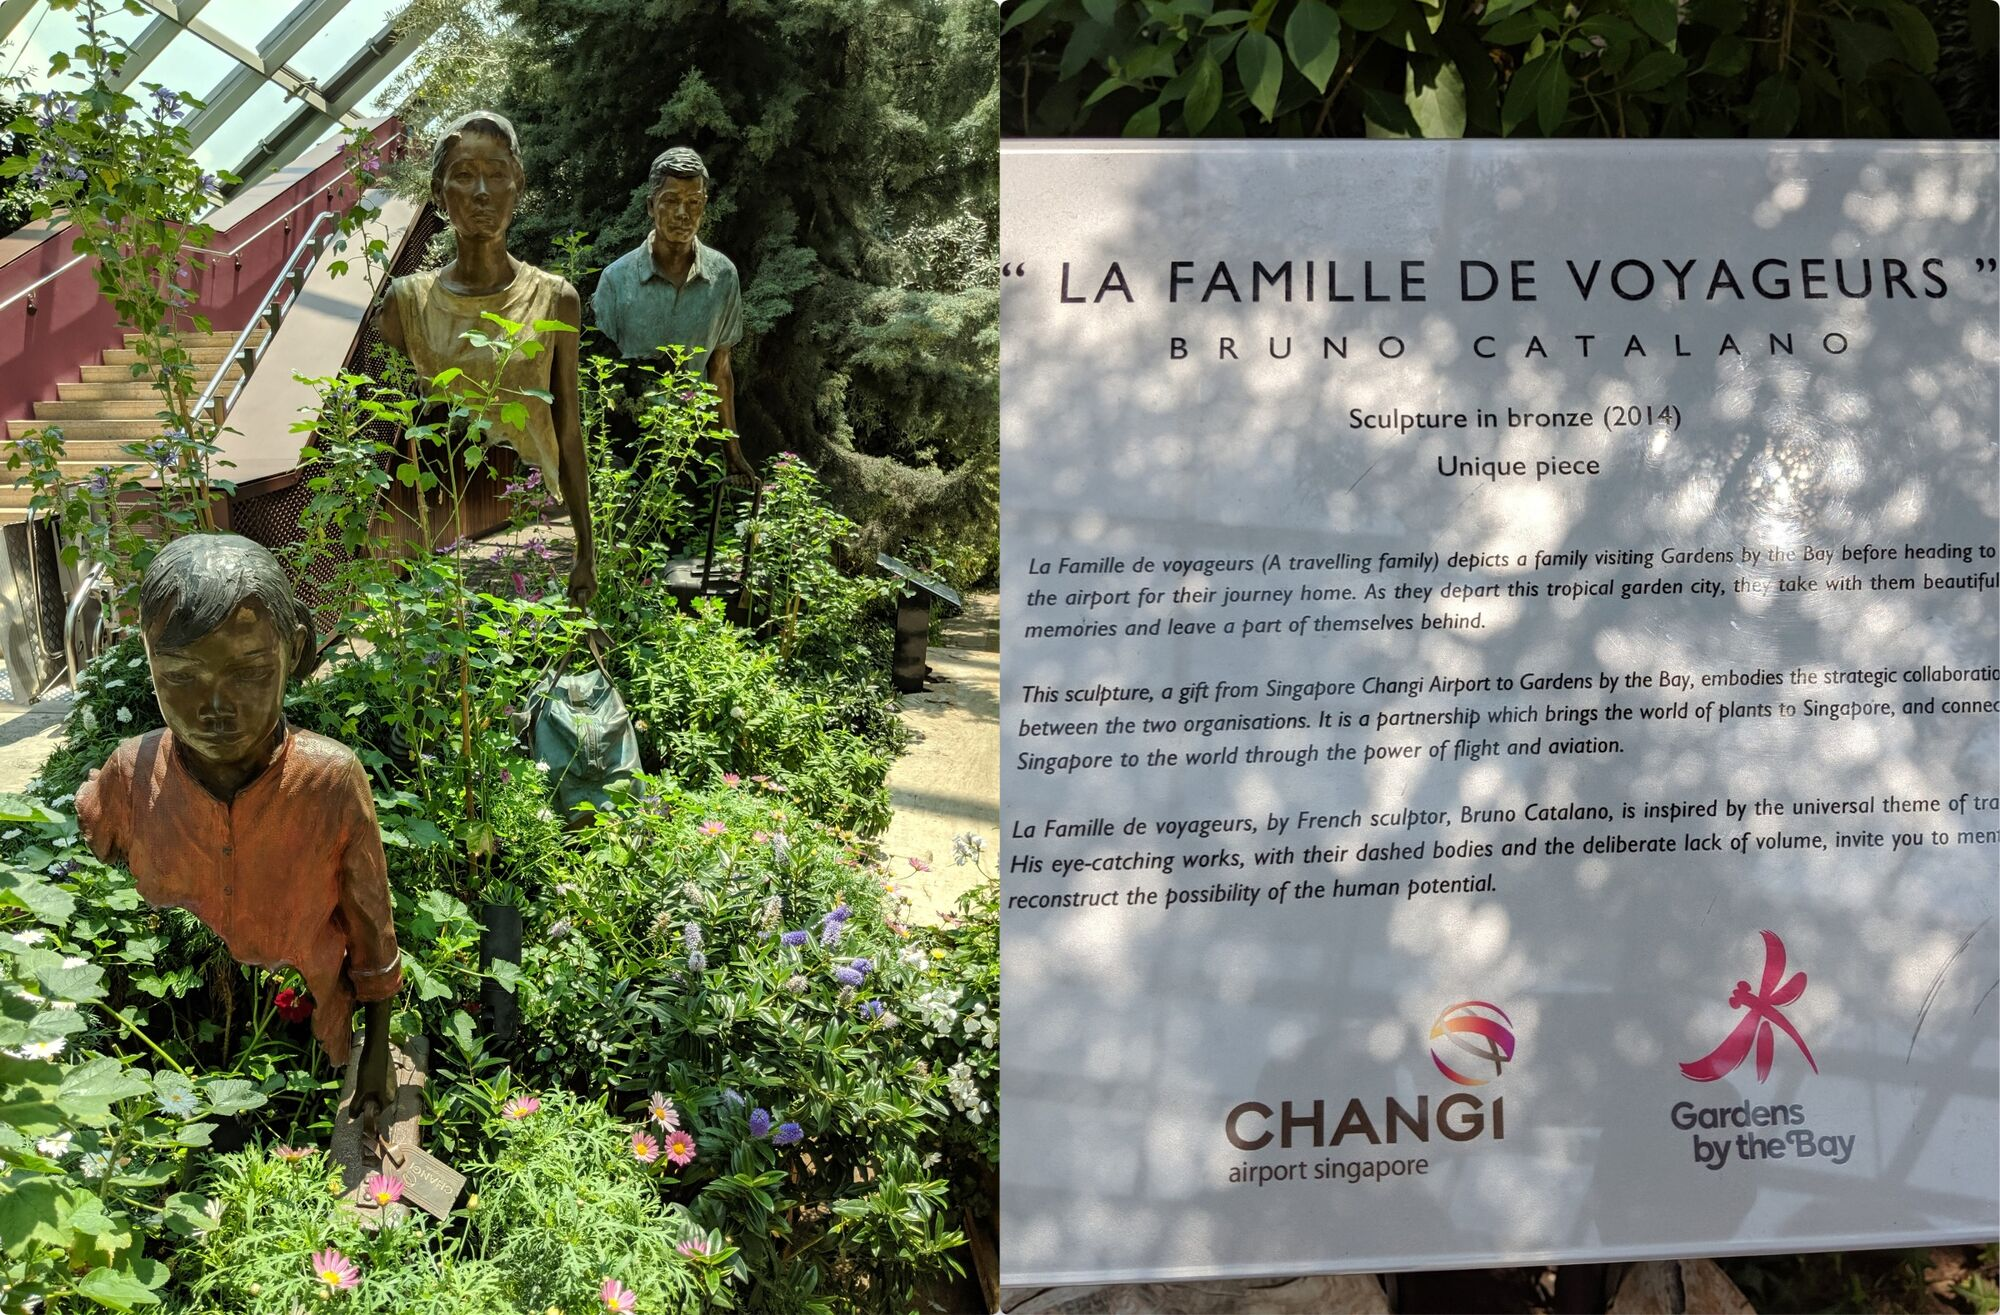 A travelling family (La Famille De Voyageurs) display. The sculpture a gift from Changi Airport depicts a family before heading to the airport.